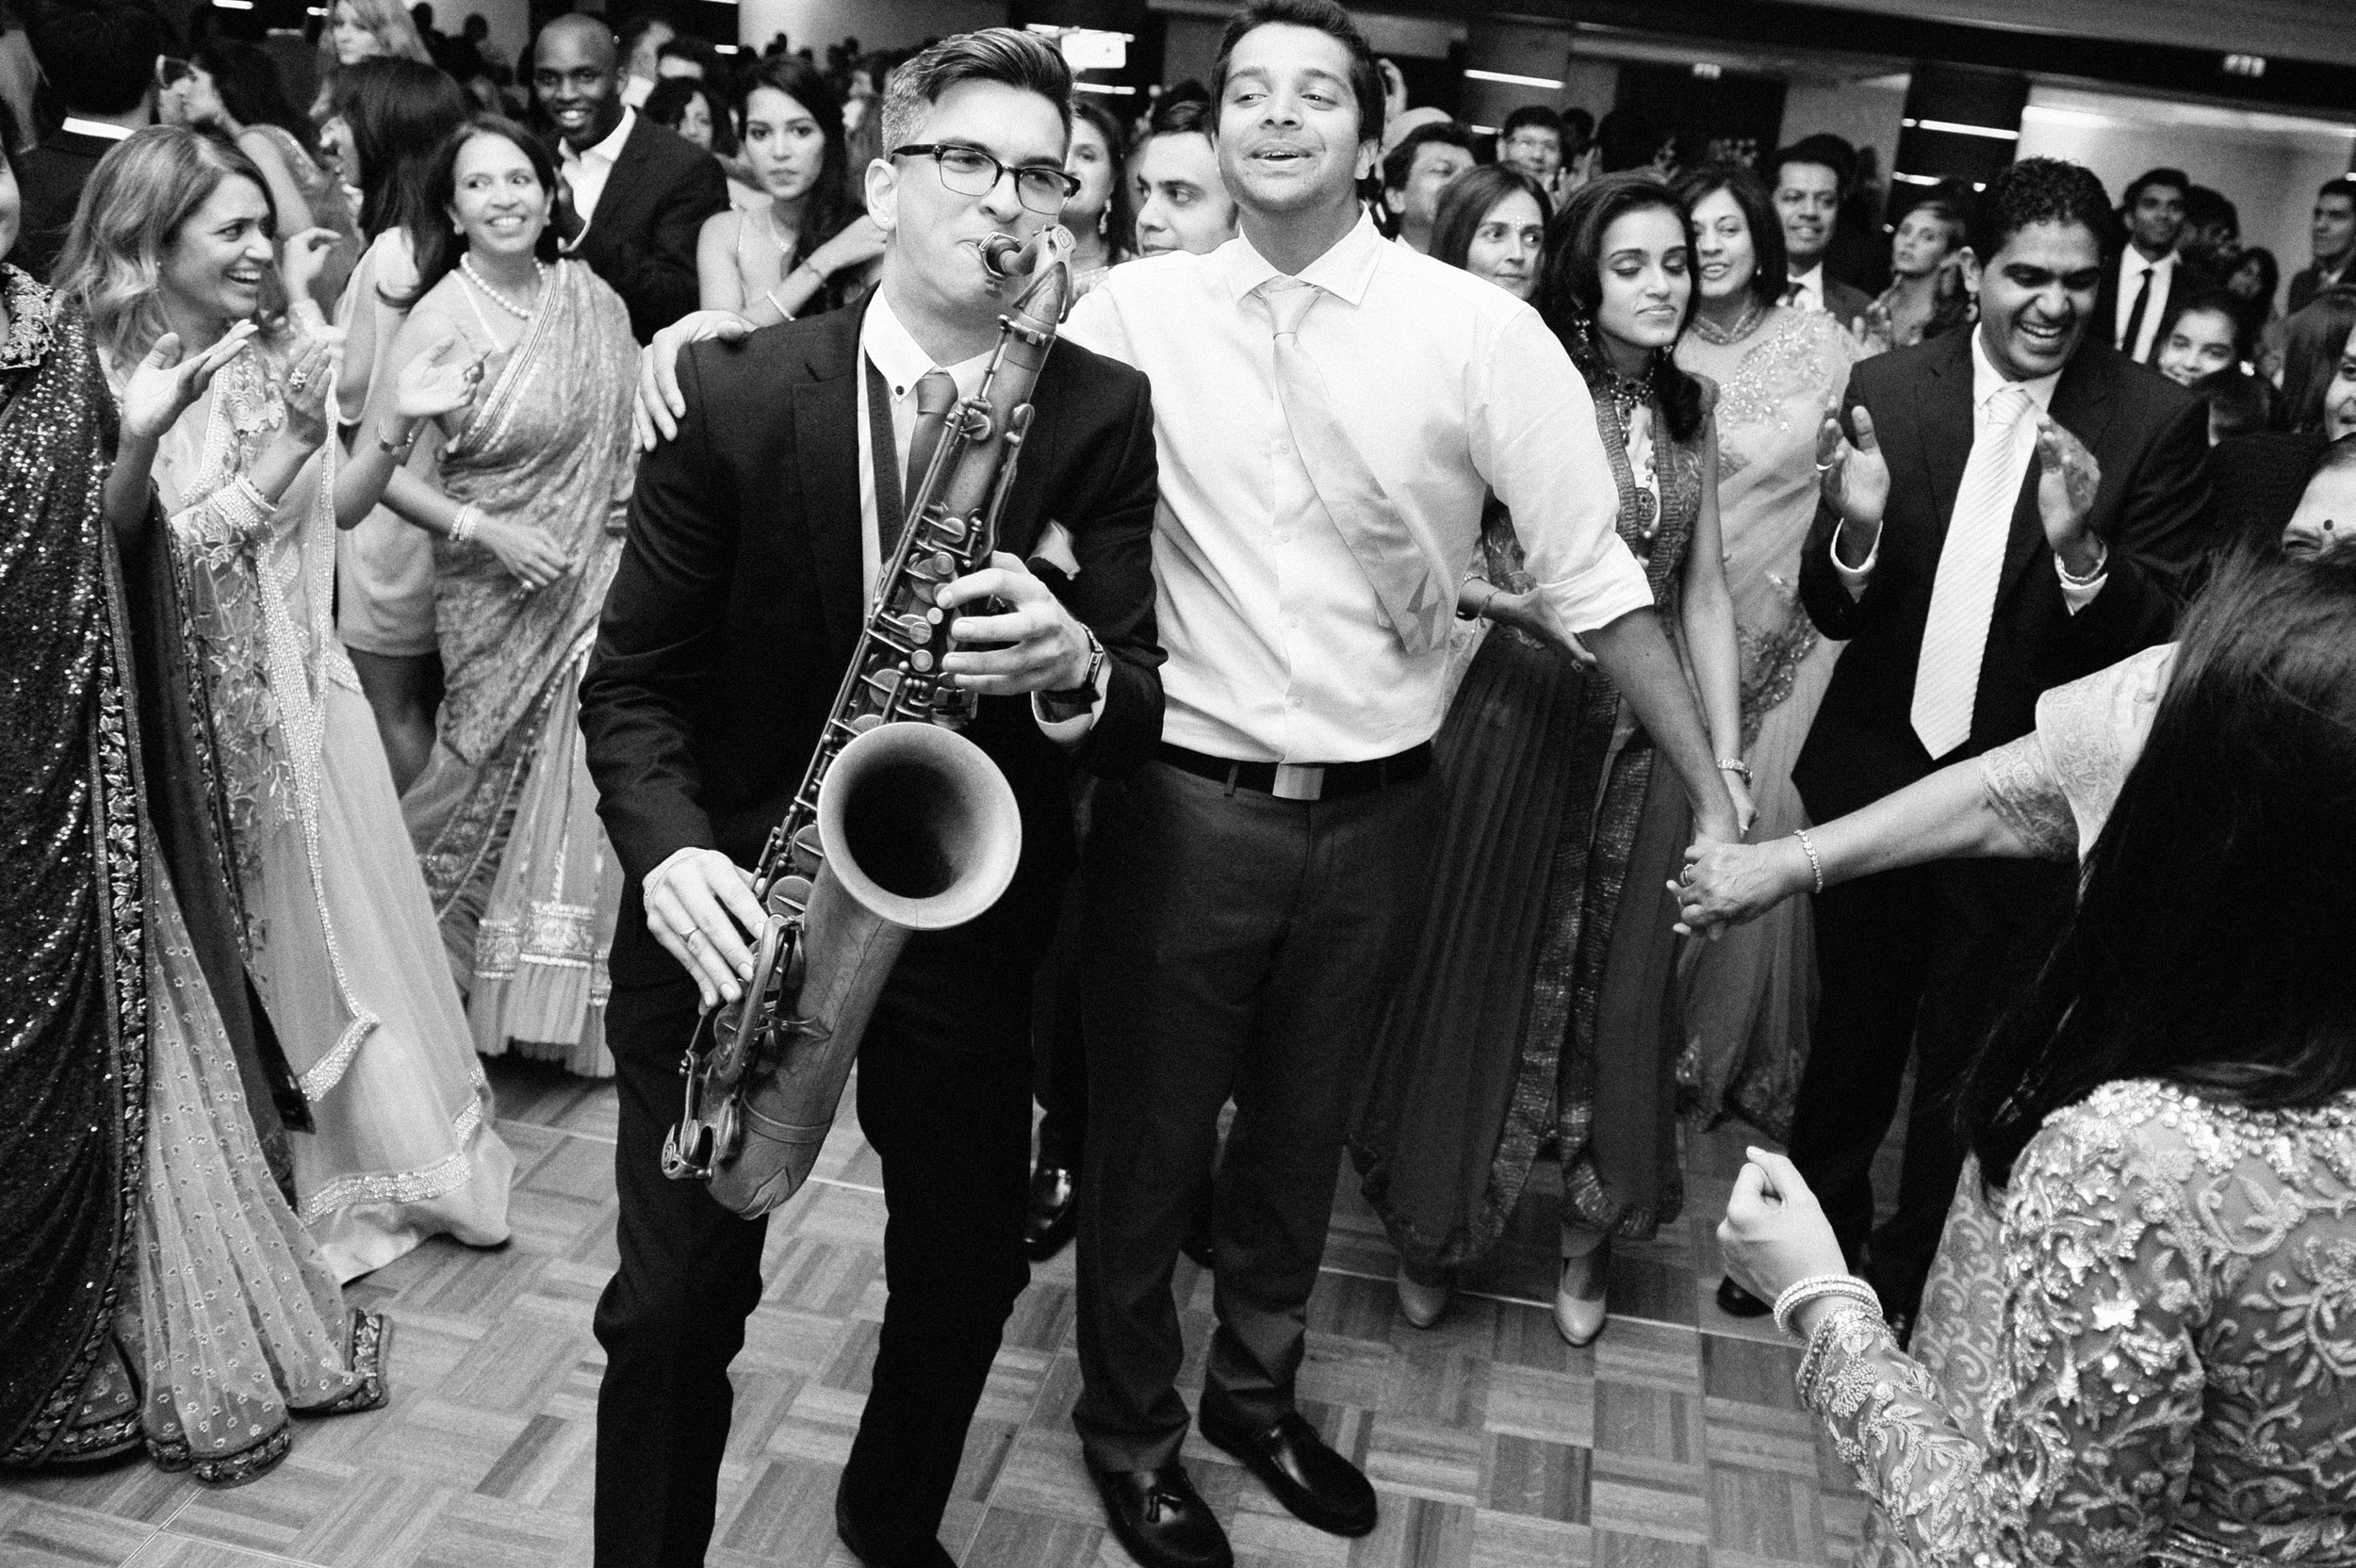 The Prototypes Wedding Band Party Band Function Band